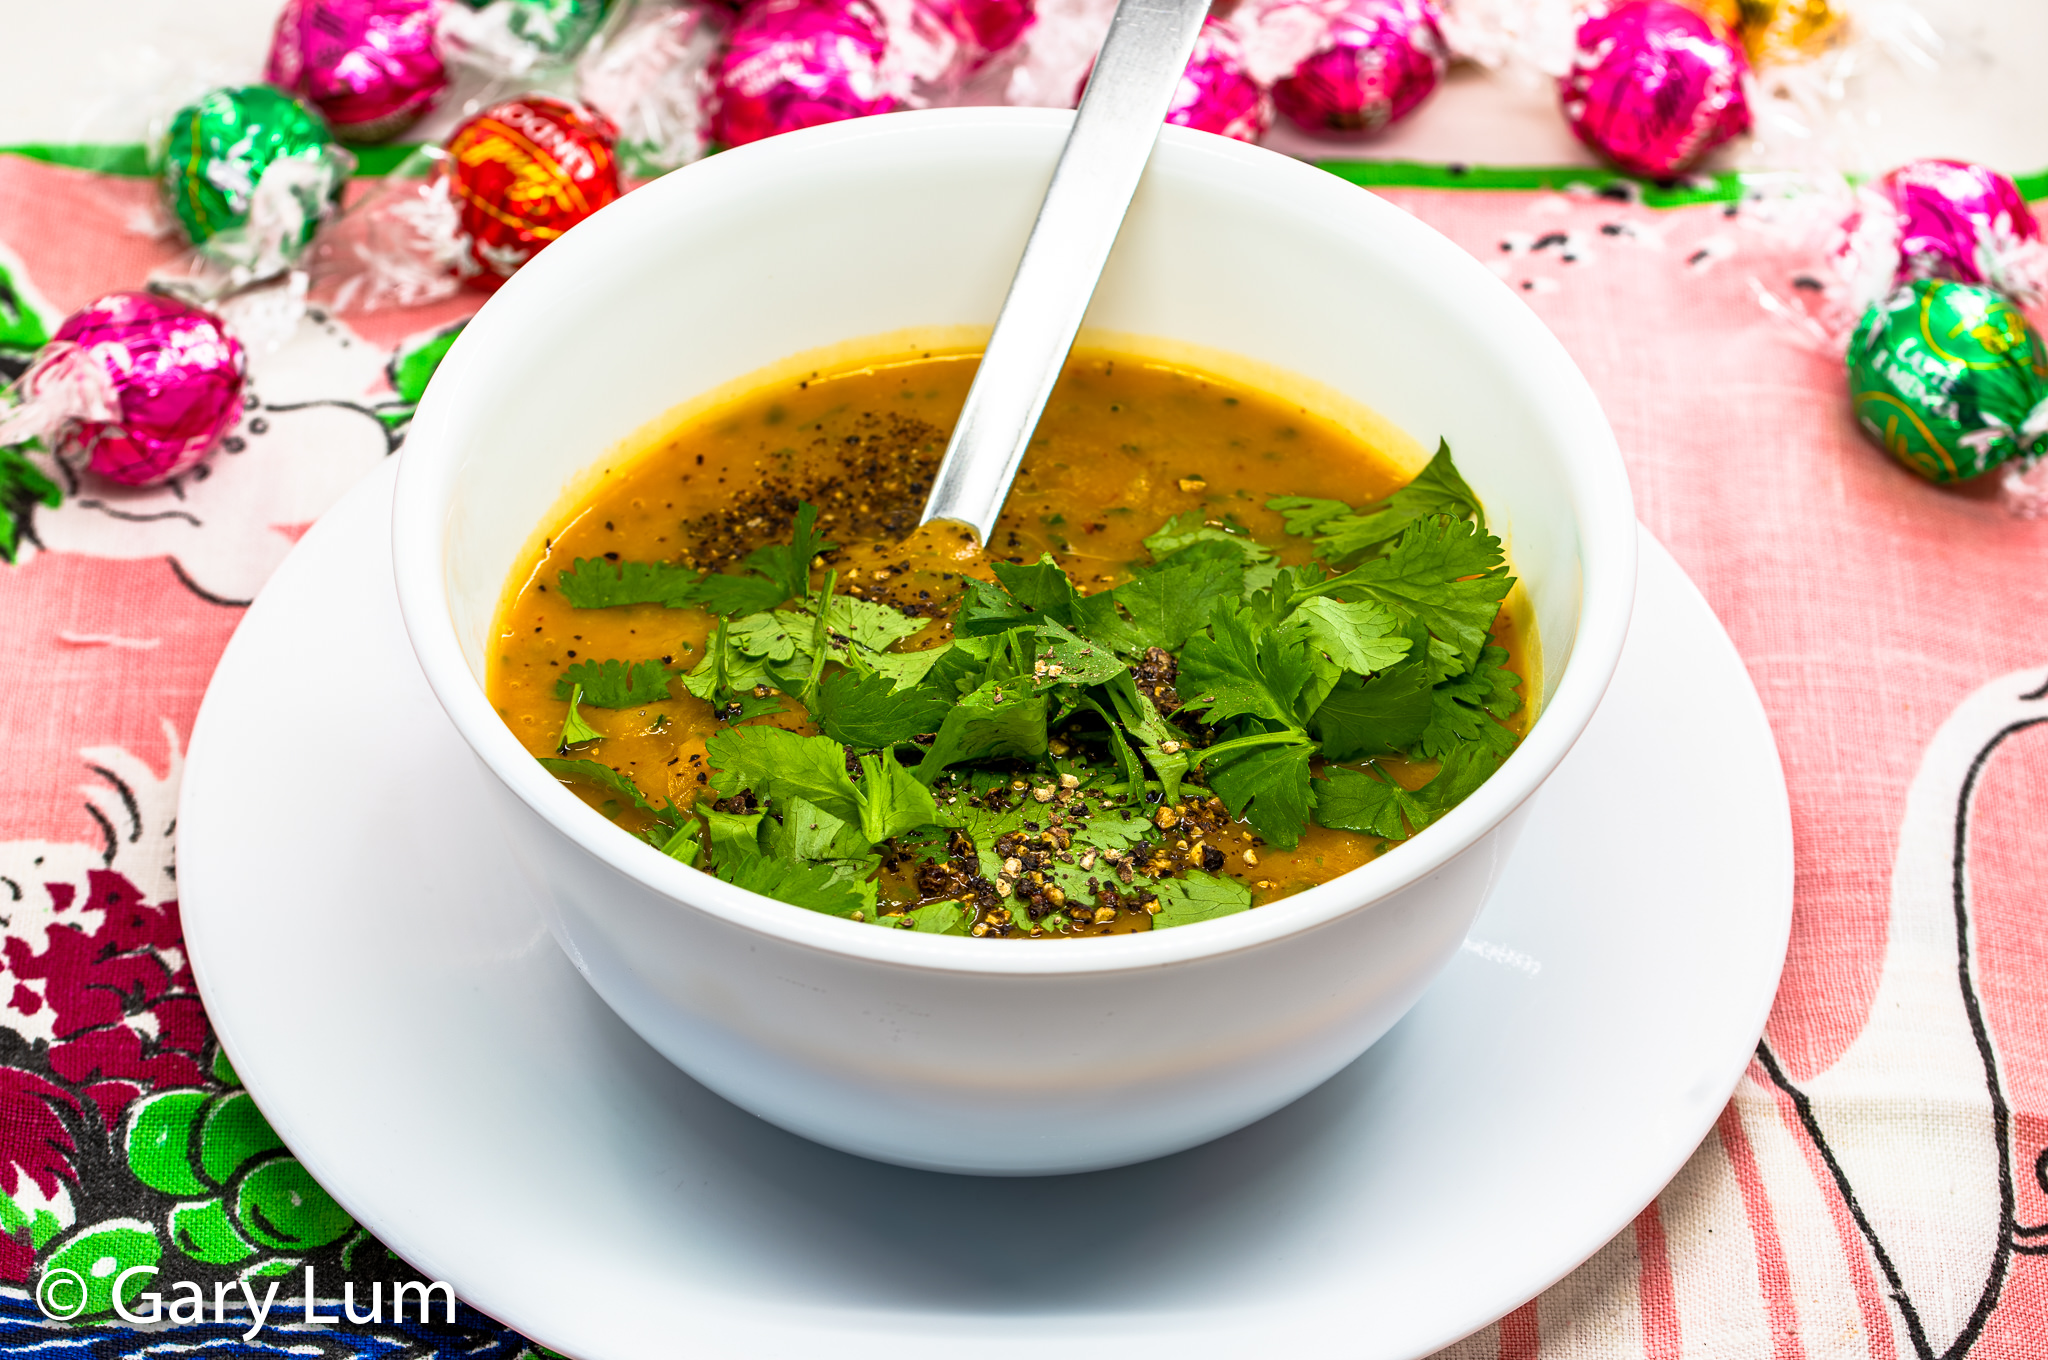 Spicy Thai curry butternut pumpkin soup with coriander. #covidlife #stayhome #workfromhome